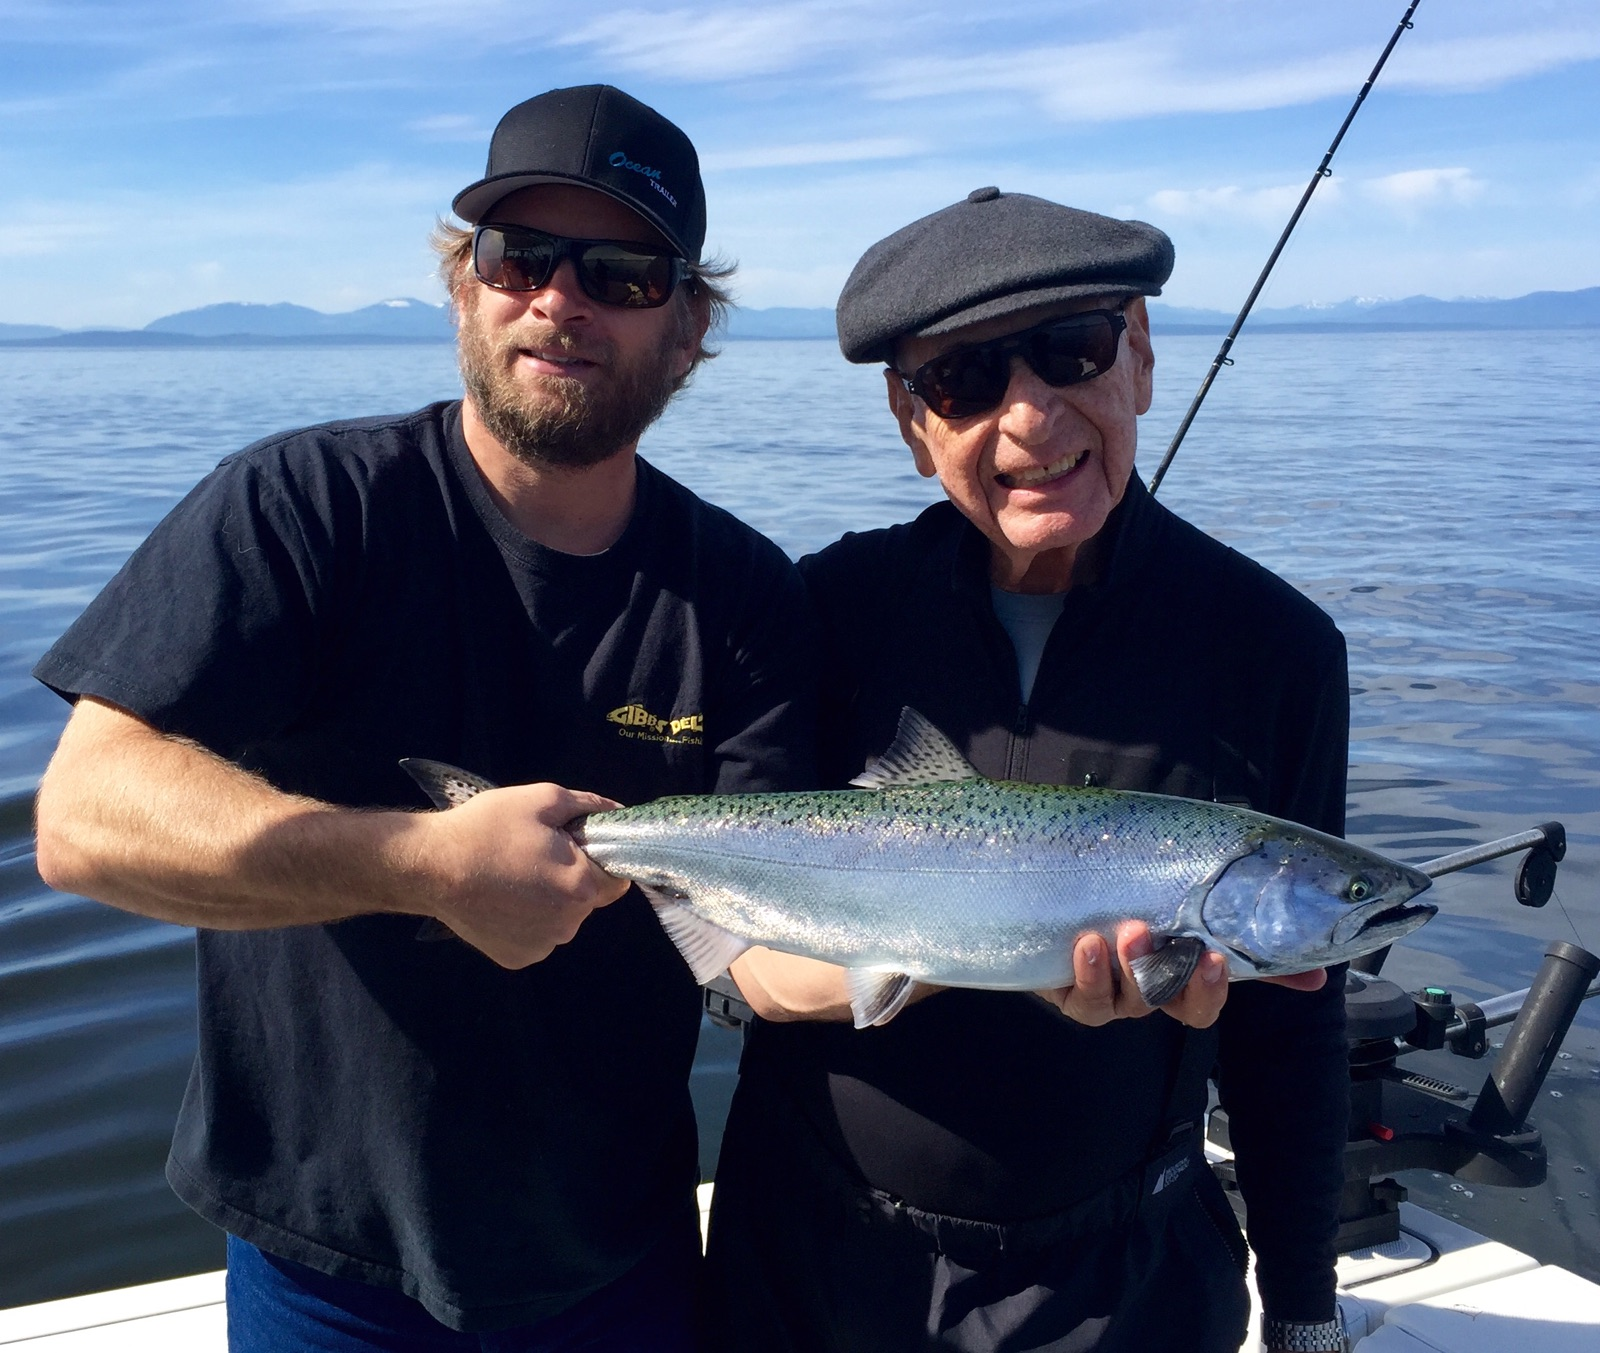 salmon-fishing-Vancouver-report-man-April19-2016